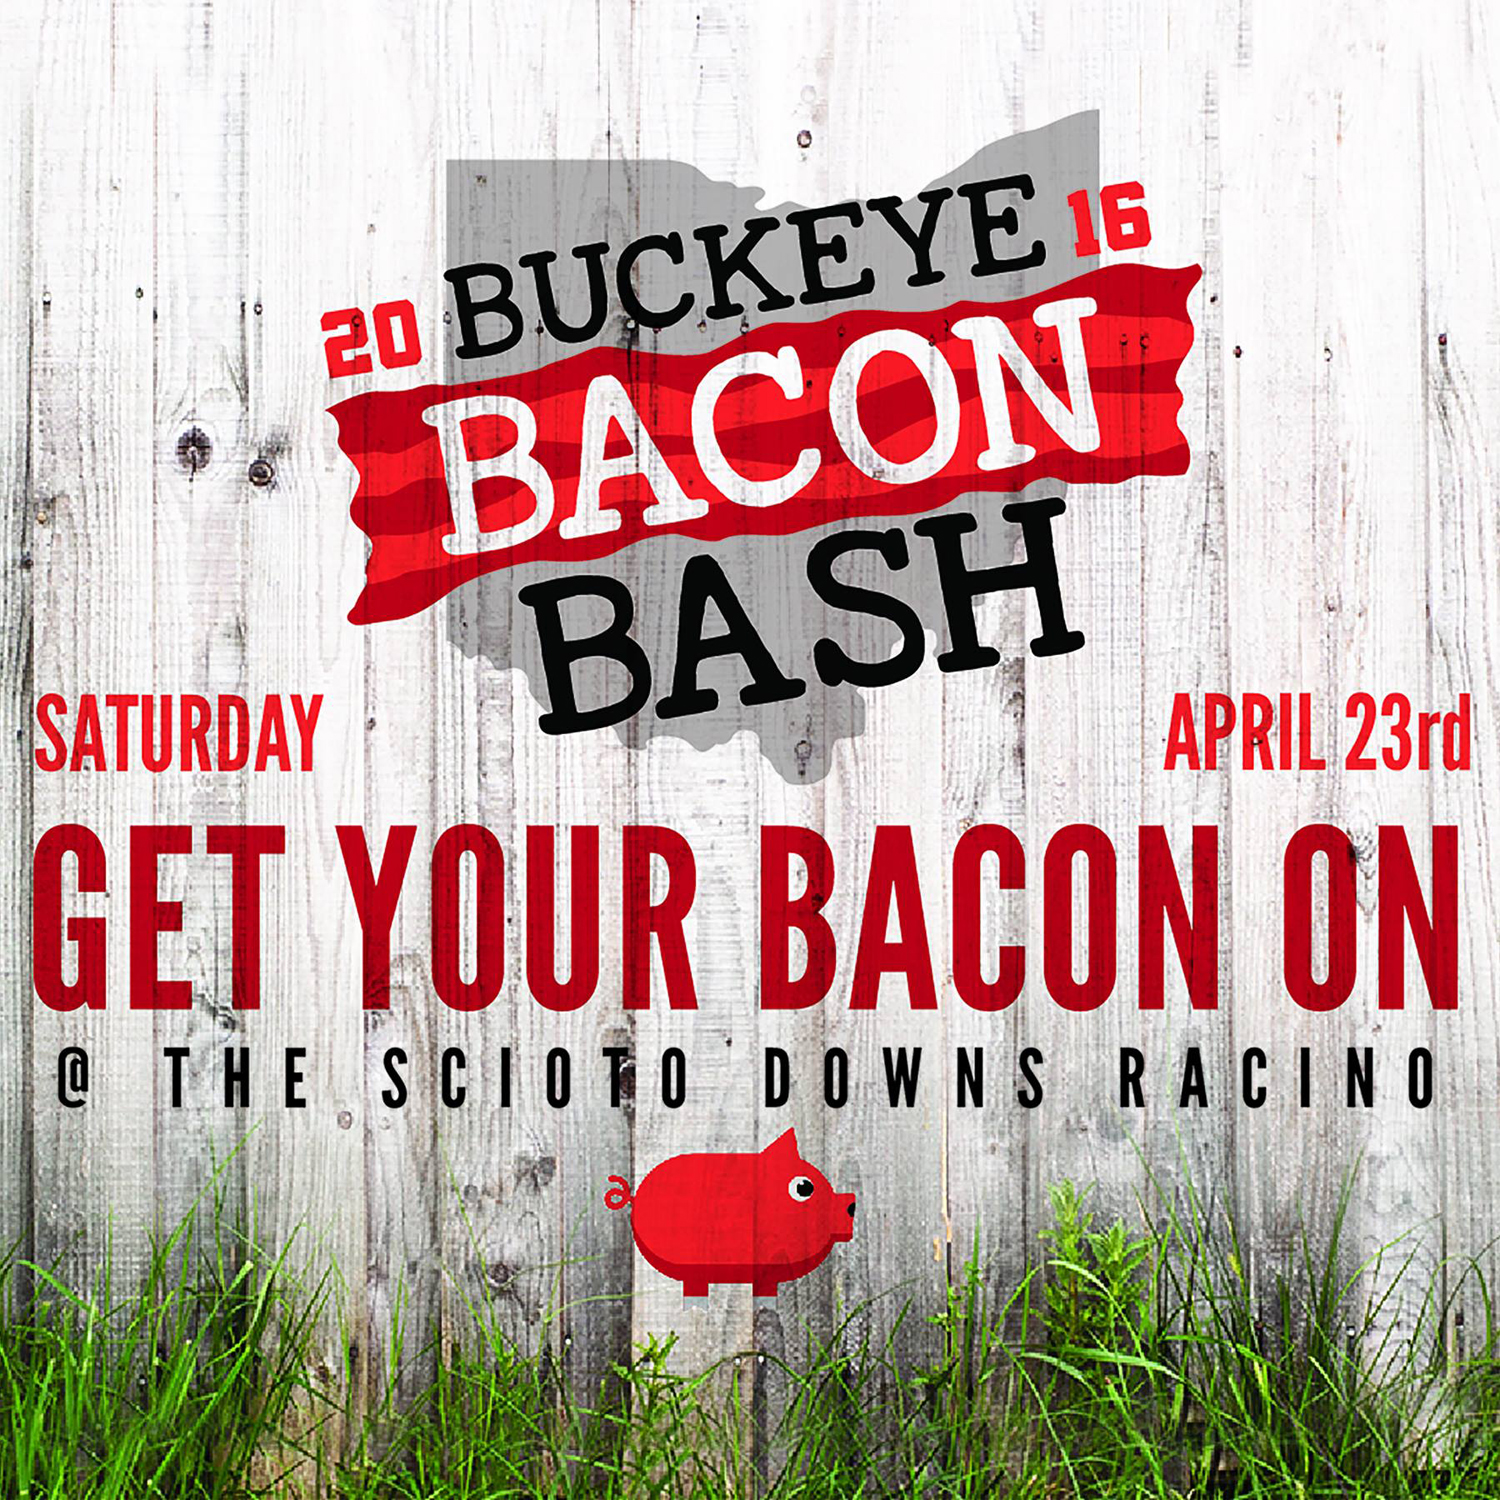 Buckeye Bacon Bash